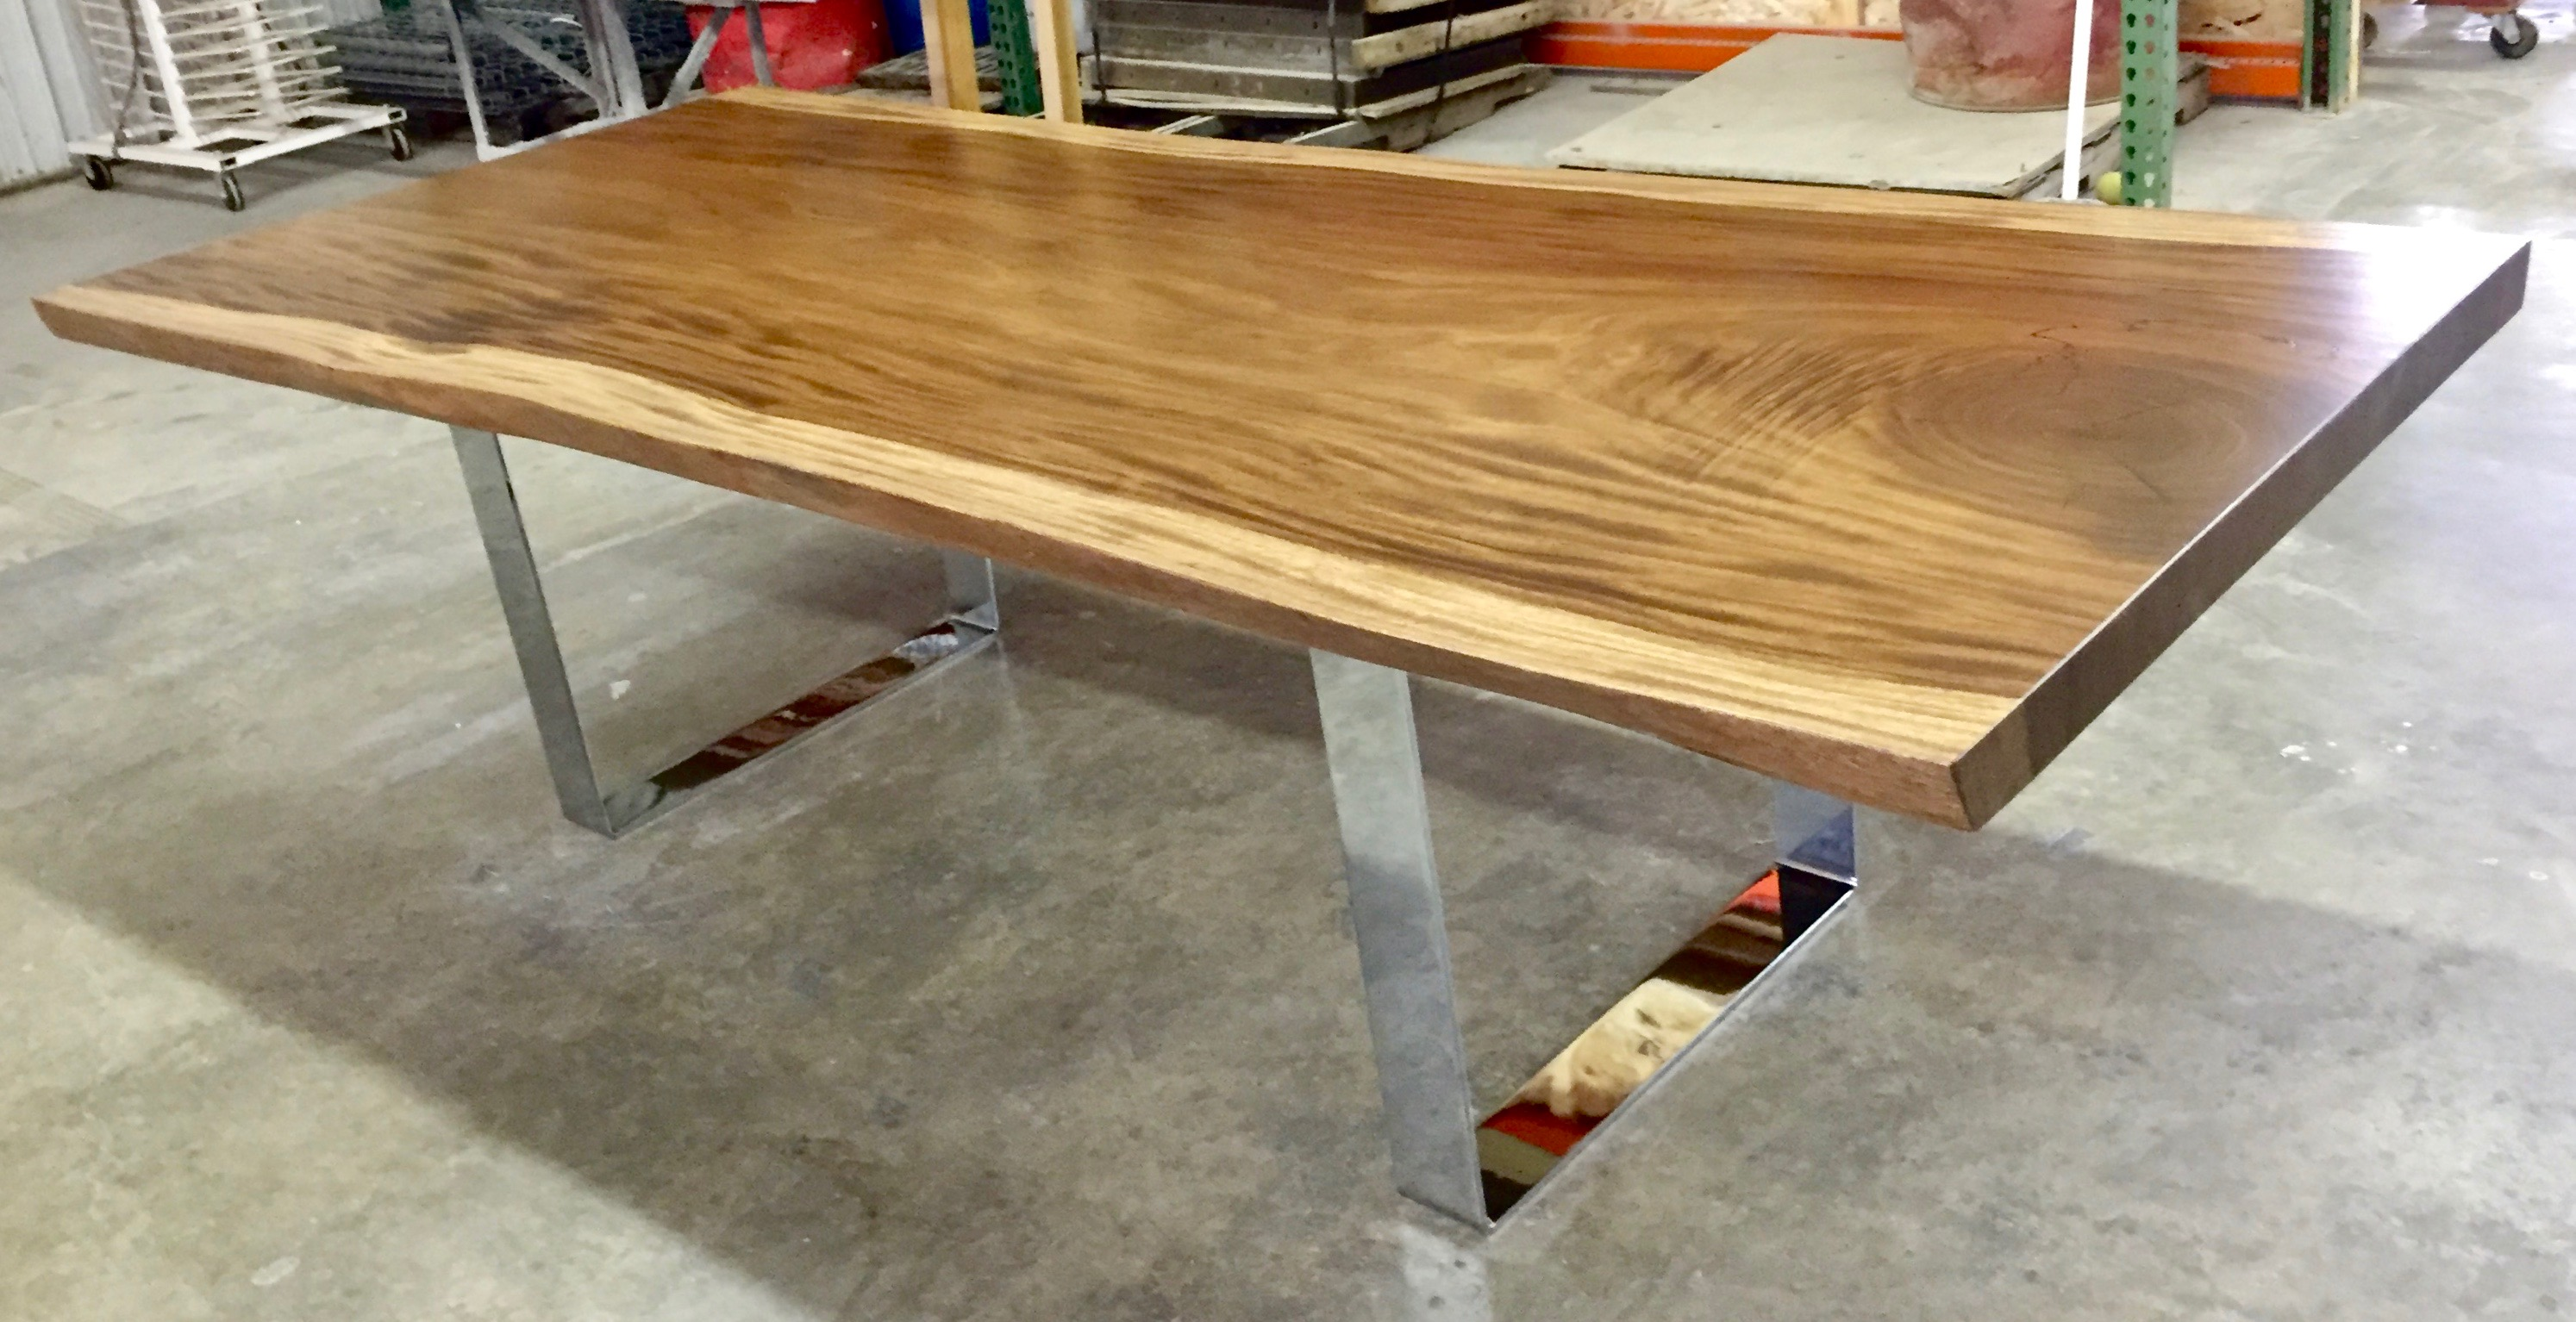 Live edge monkeypod slab with chrome U legs